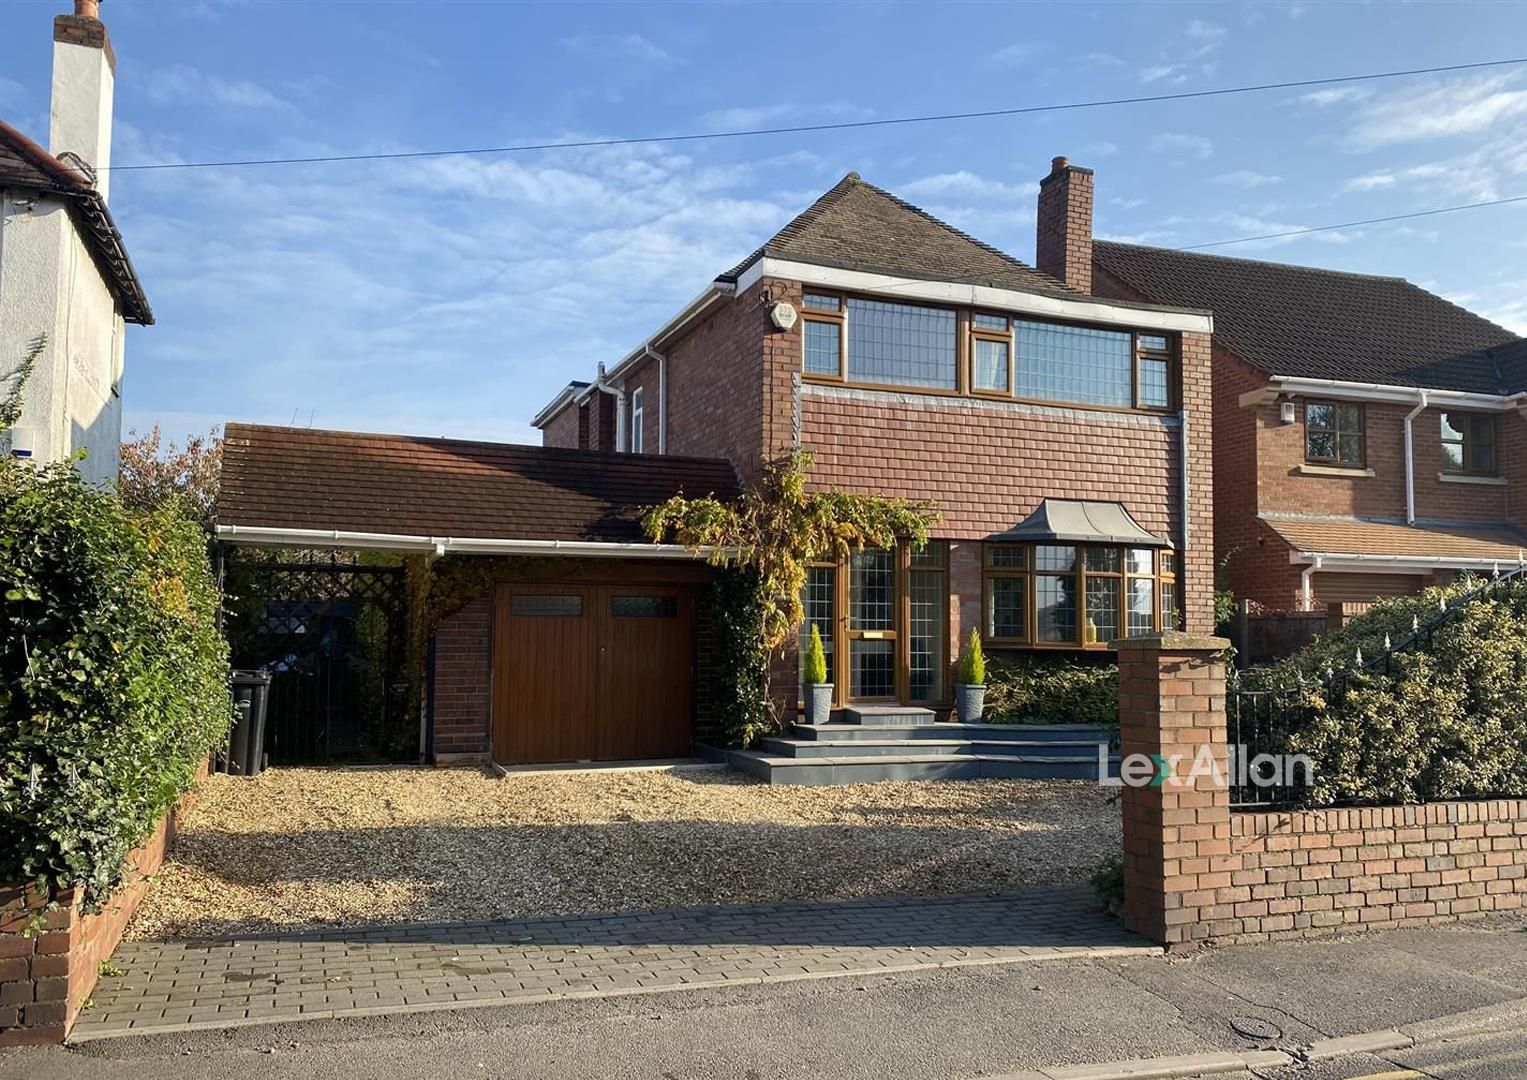 4 bed house for sale in Norton, DY8